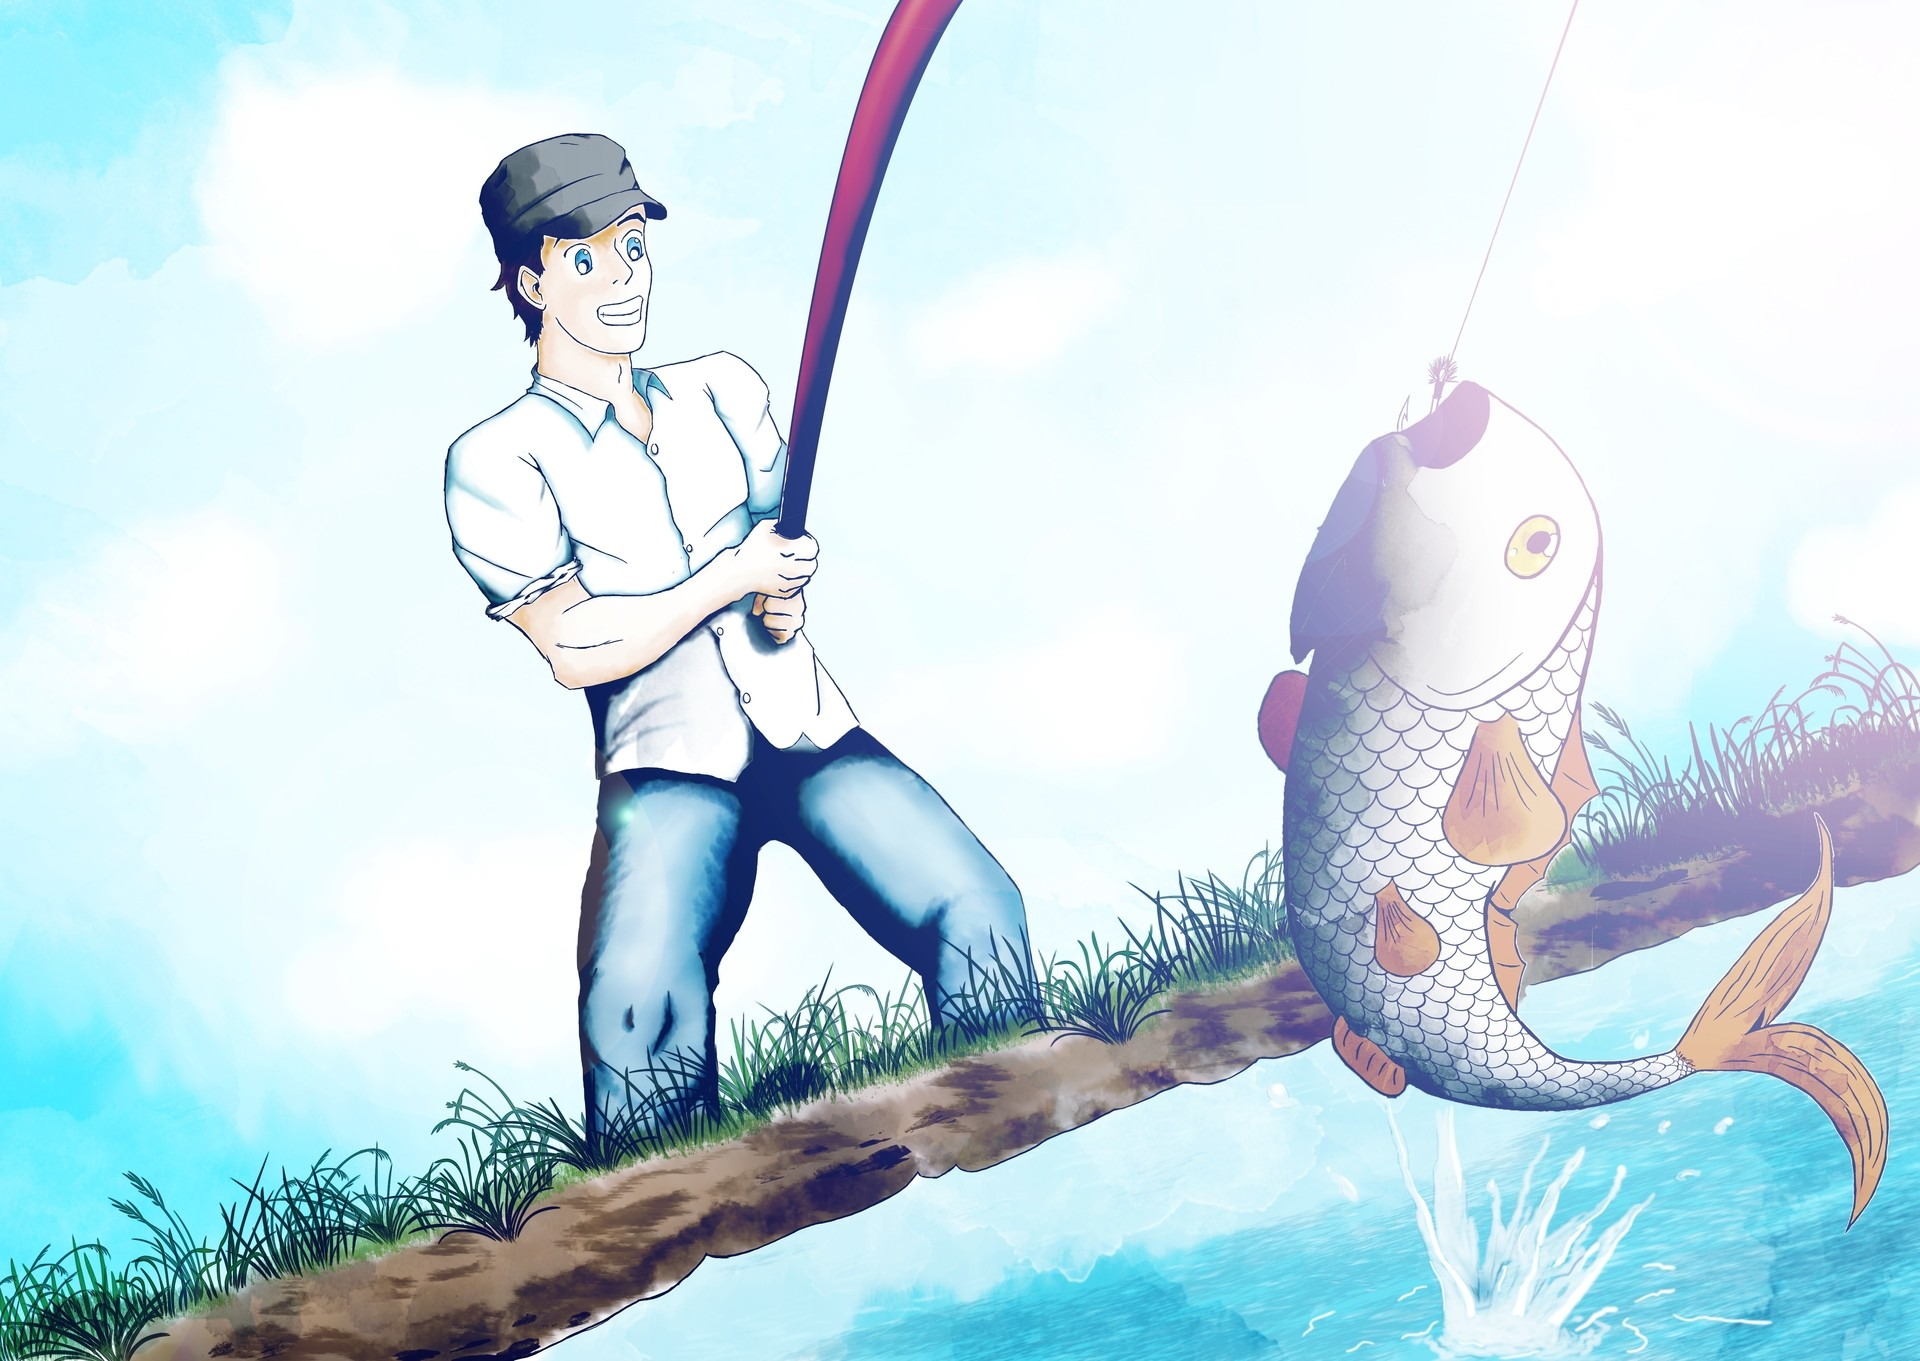 fisherman par Christophe